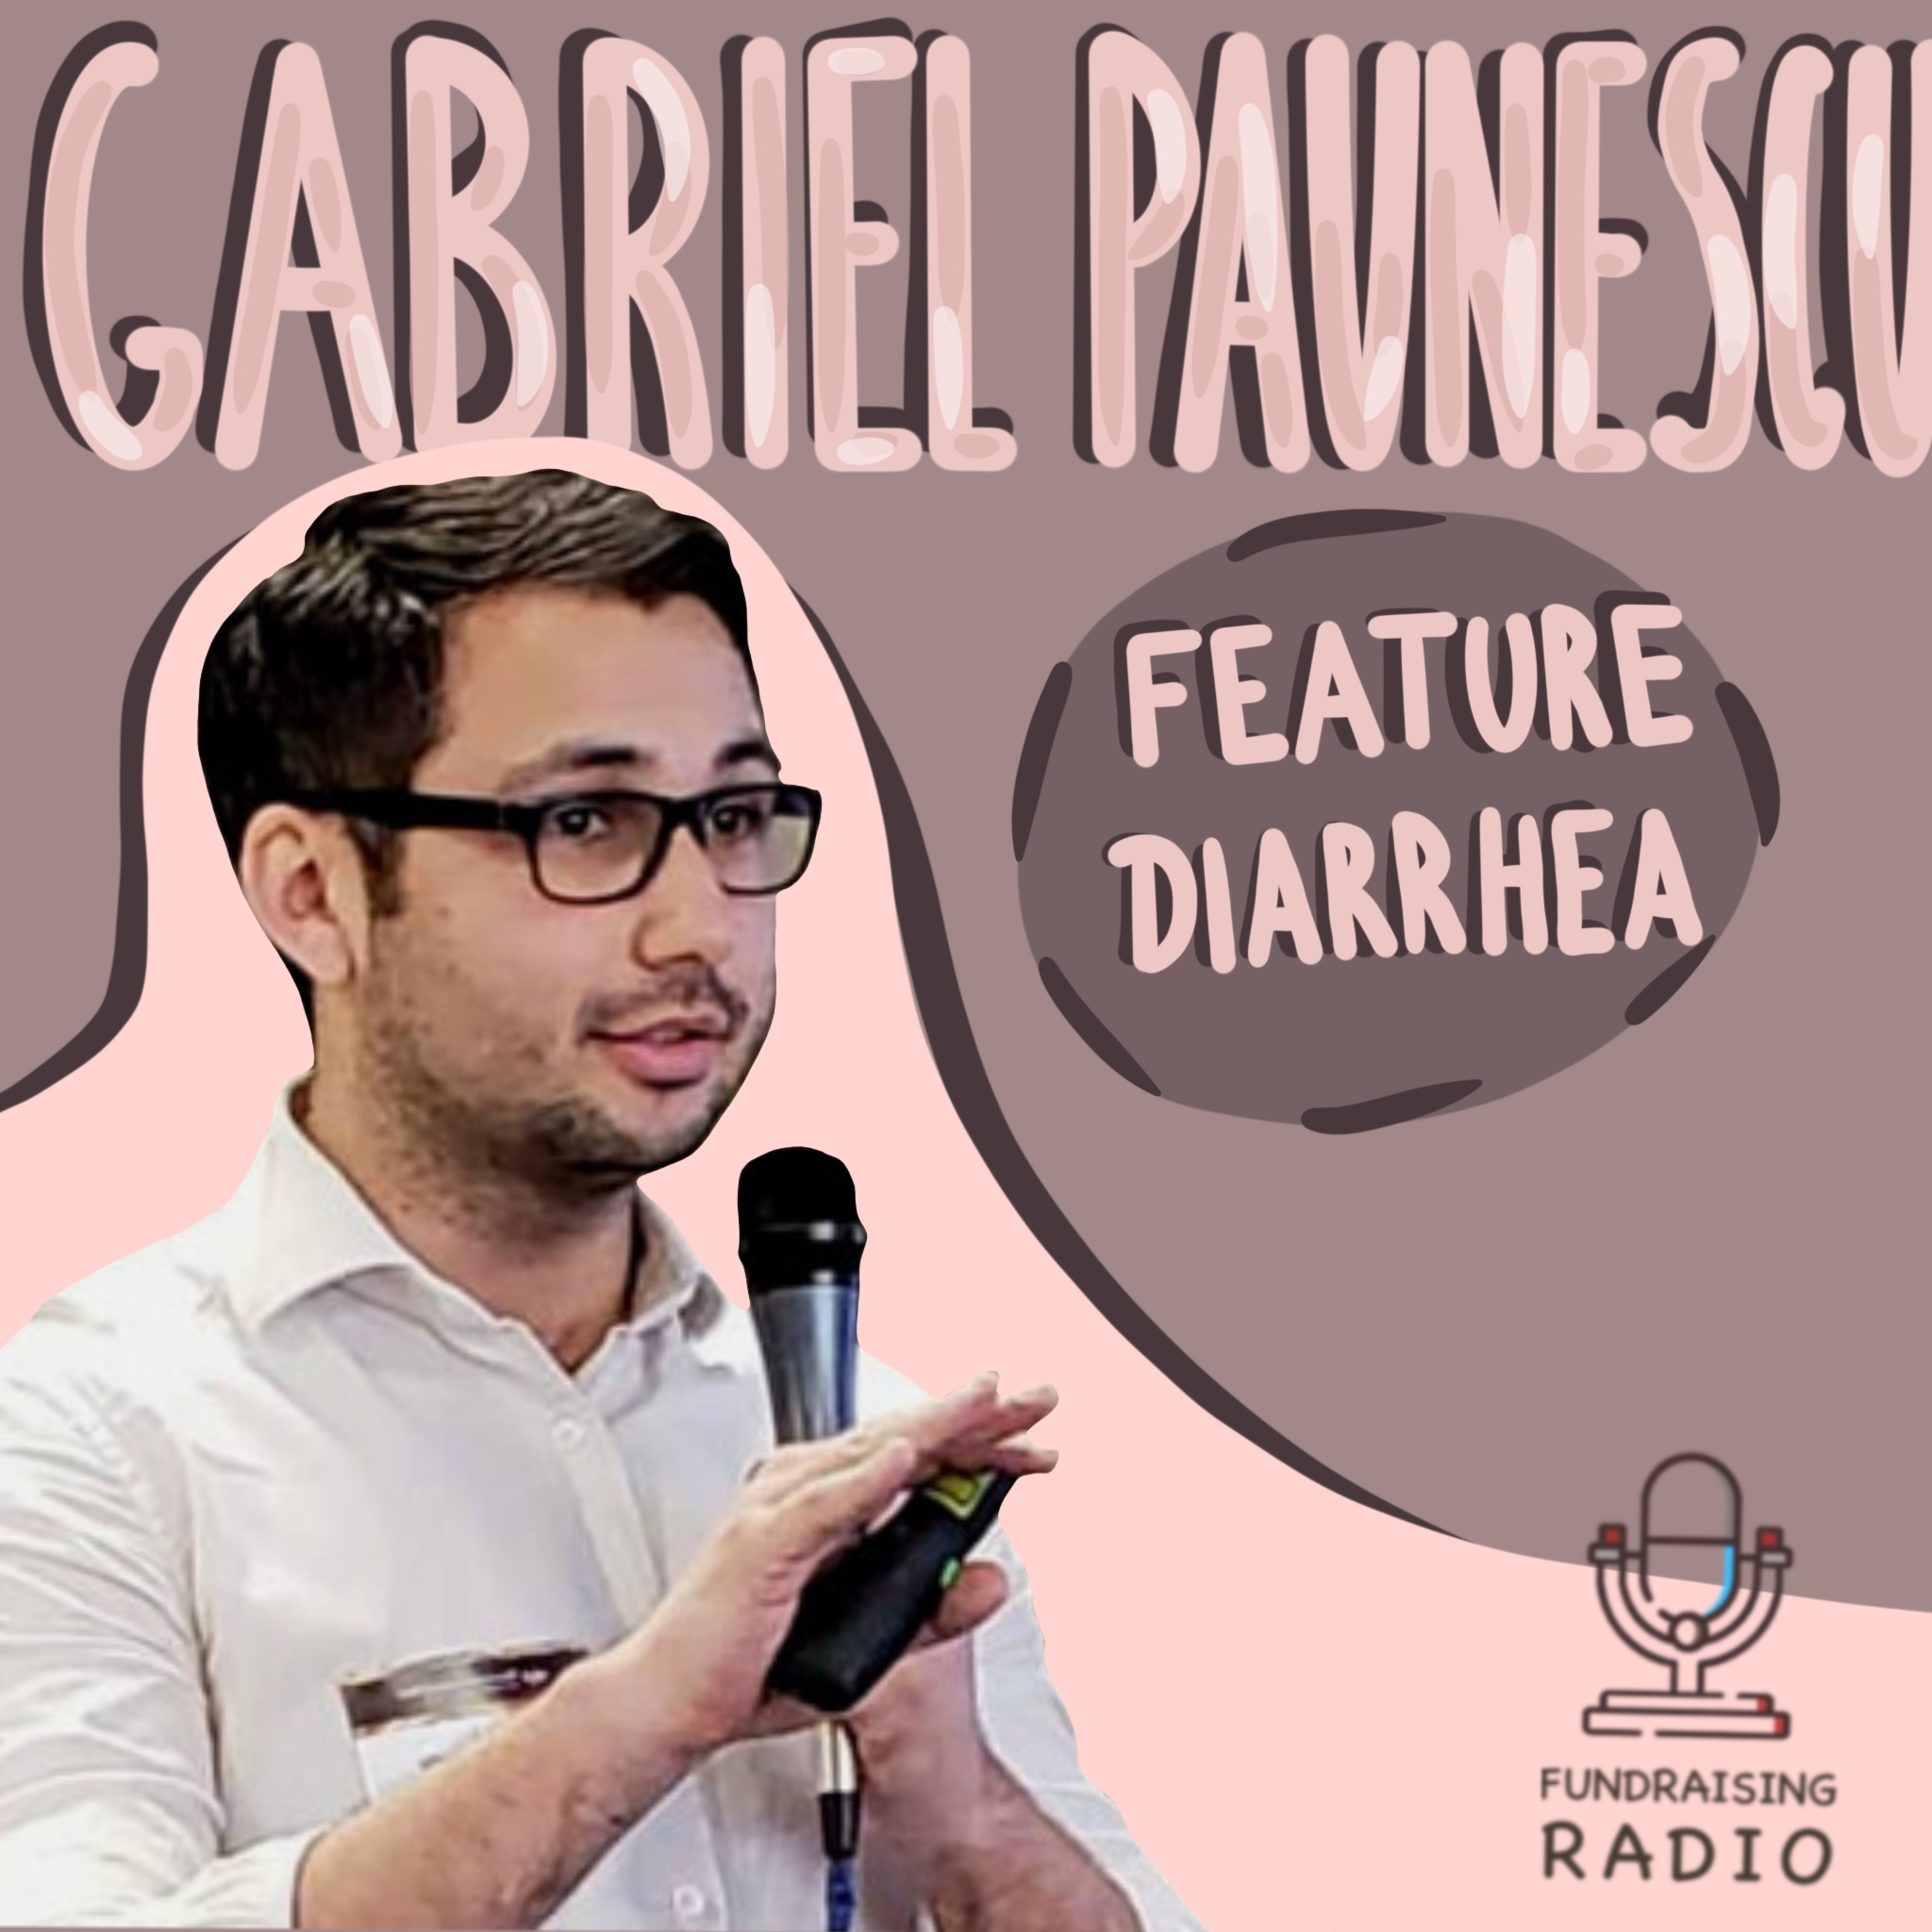 Feature diarrhea - how to build product and how to start company in a new country. By Gabriel Paunescu